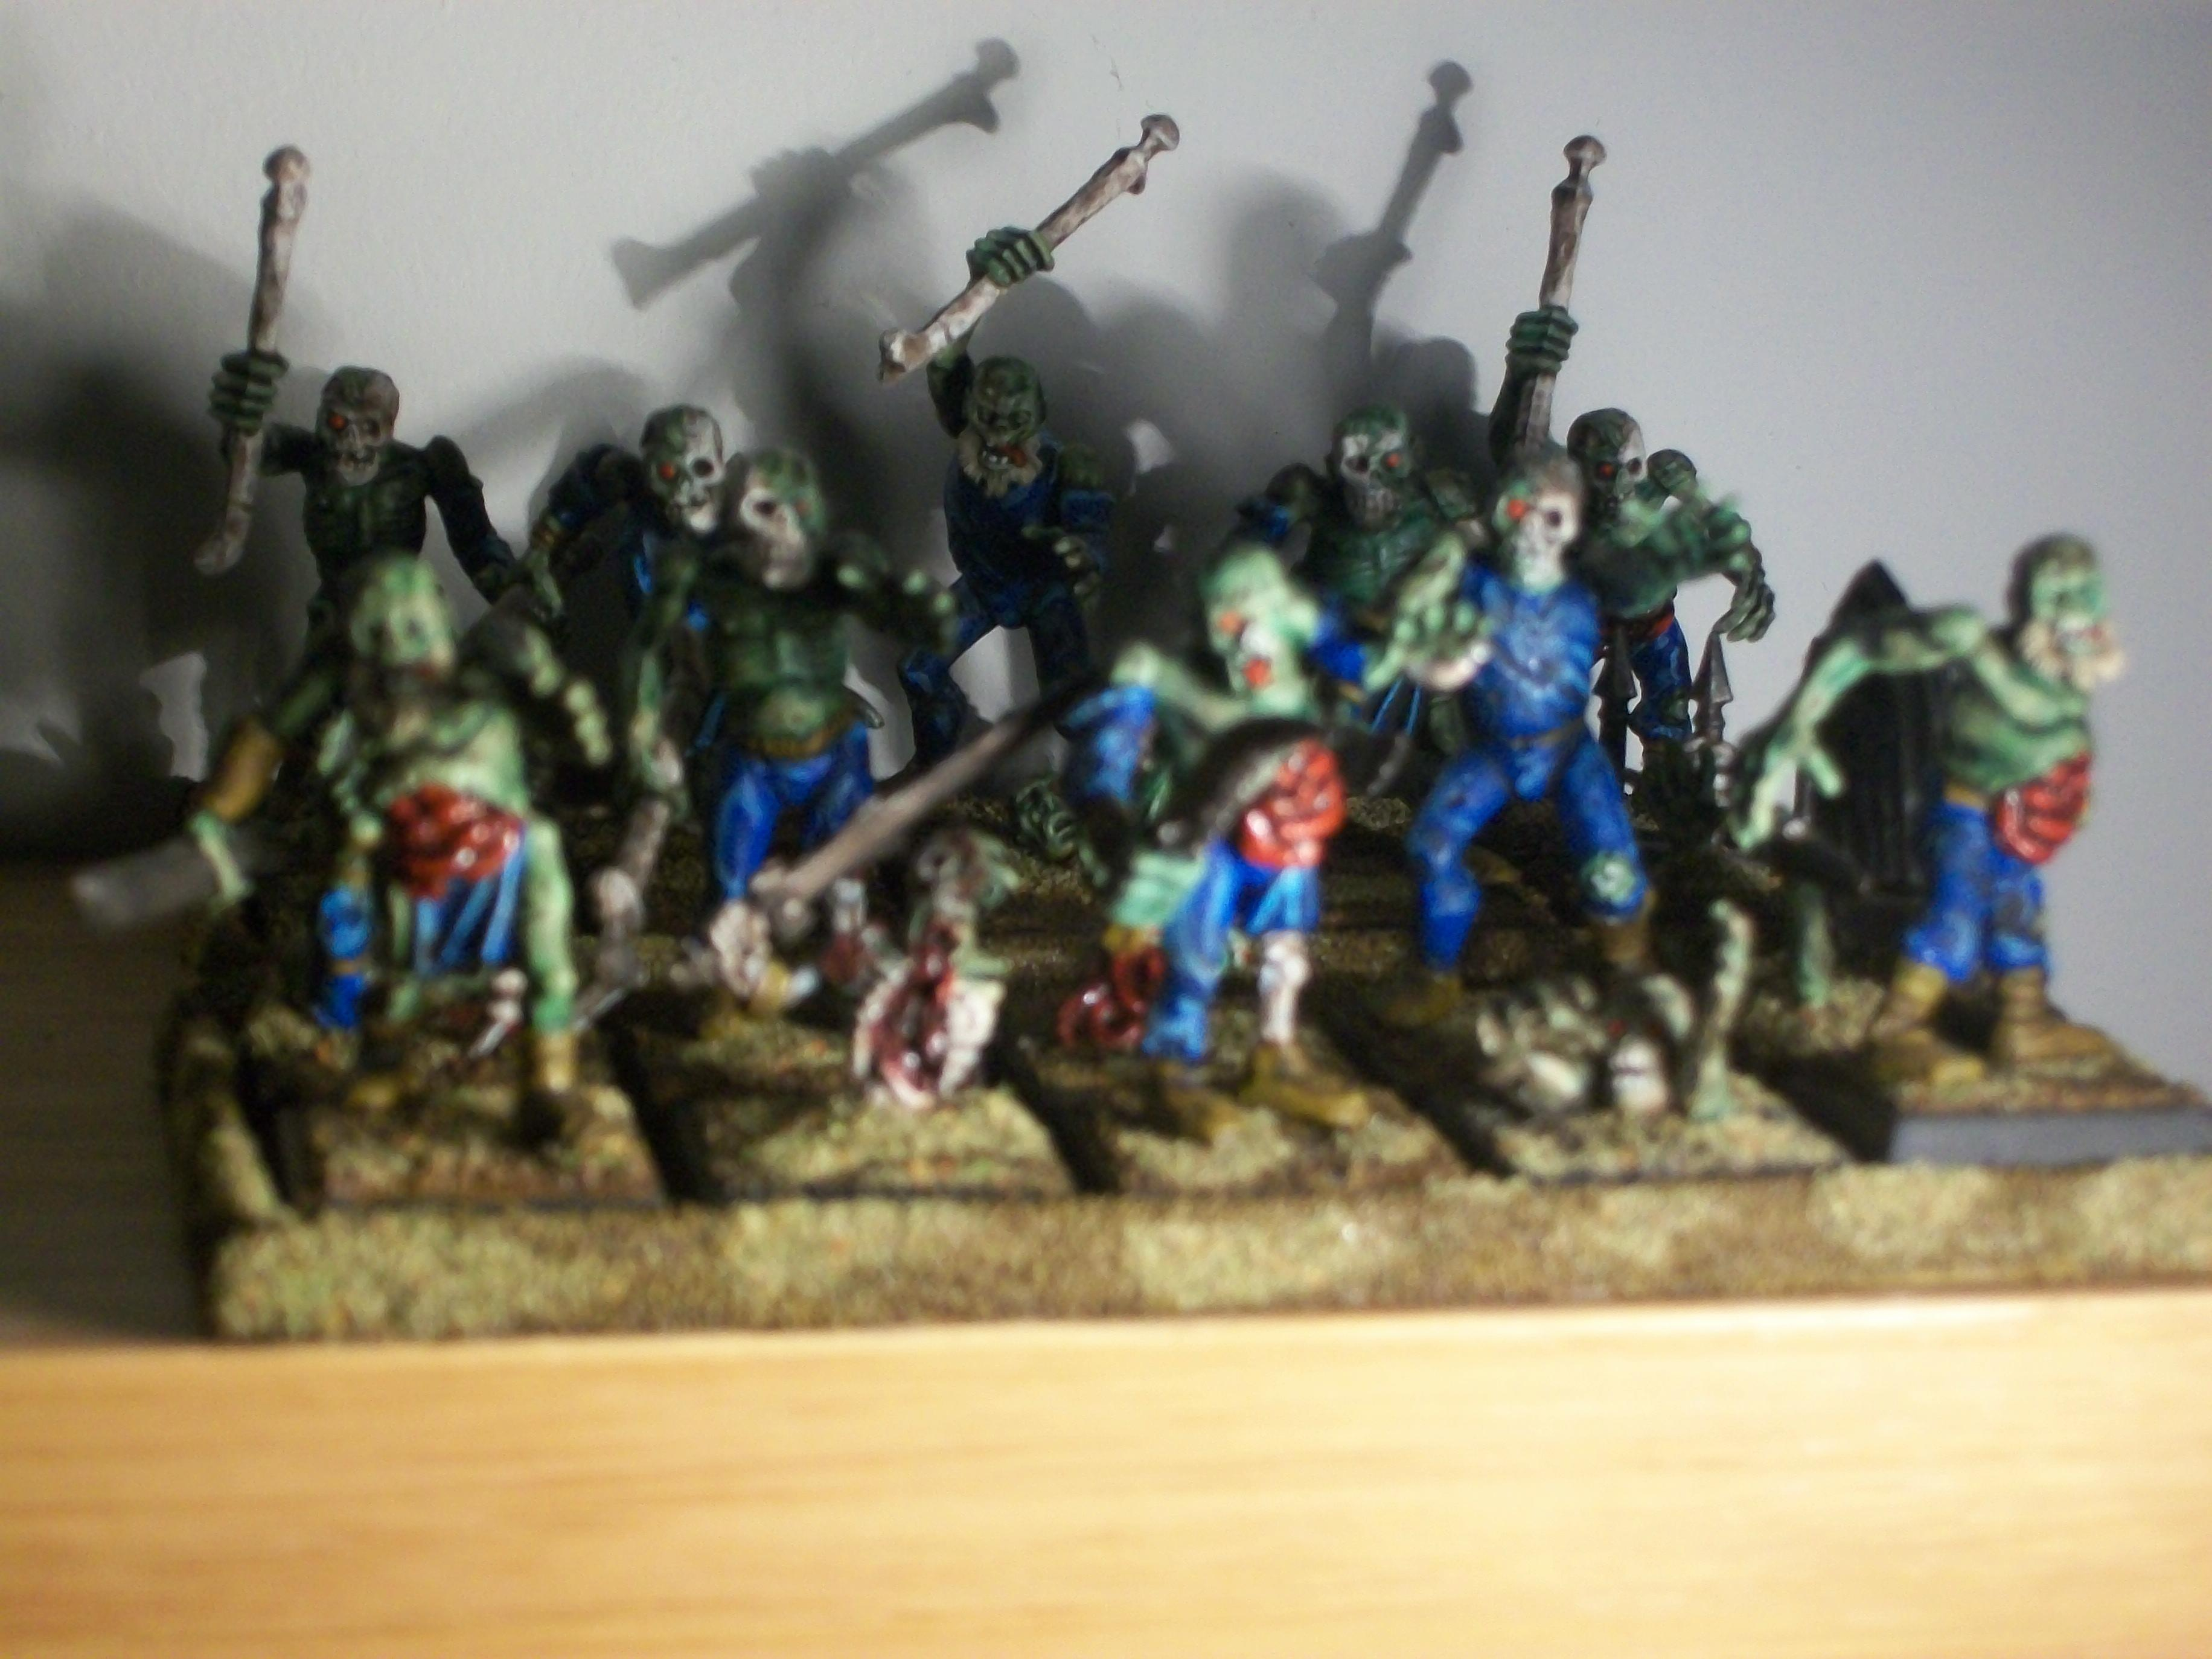 Zombies lurking slightly out of focus